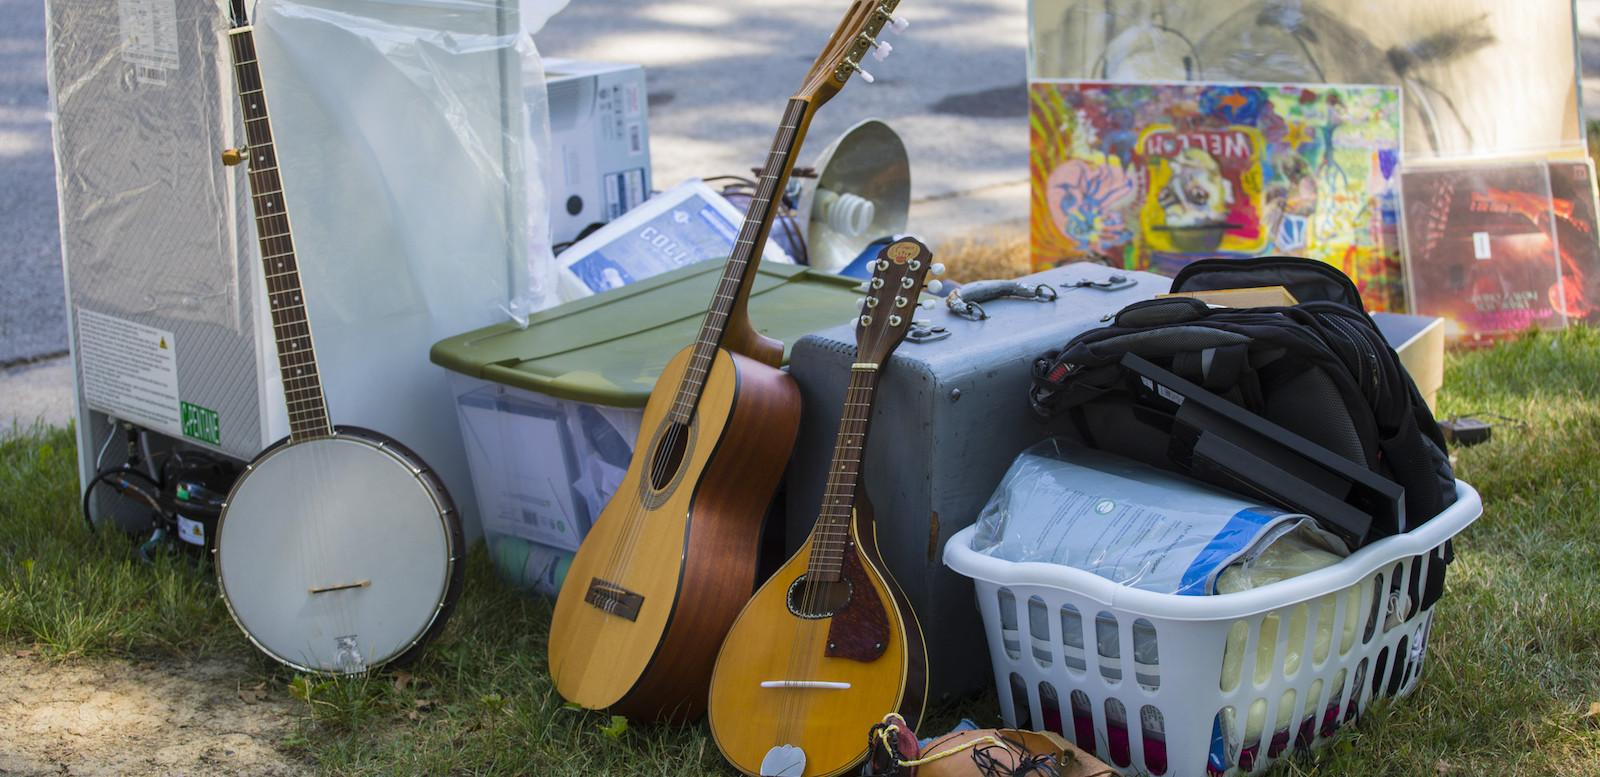 Student's belongings left on the lawn during move-in.